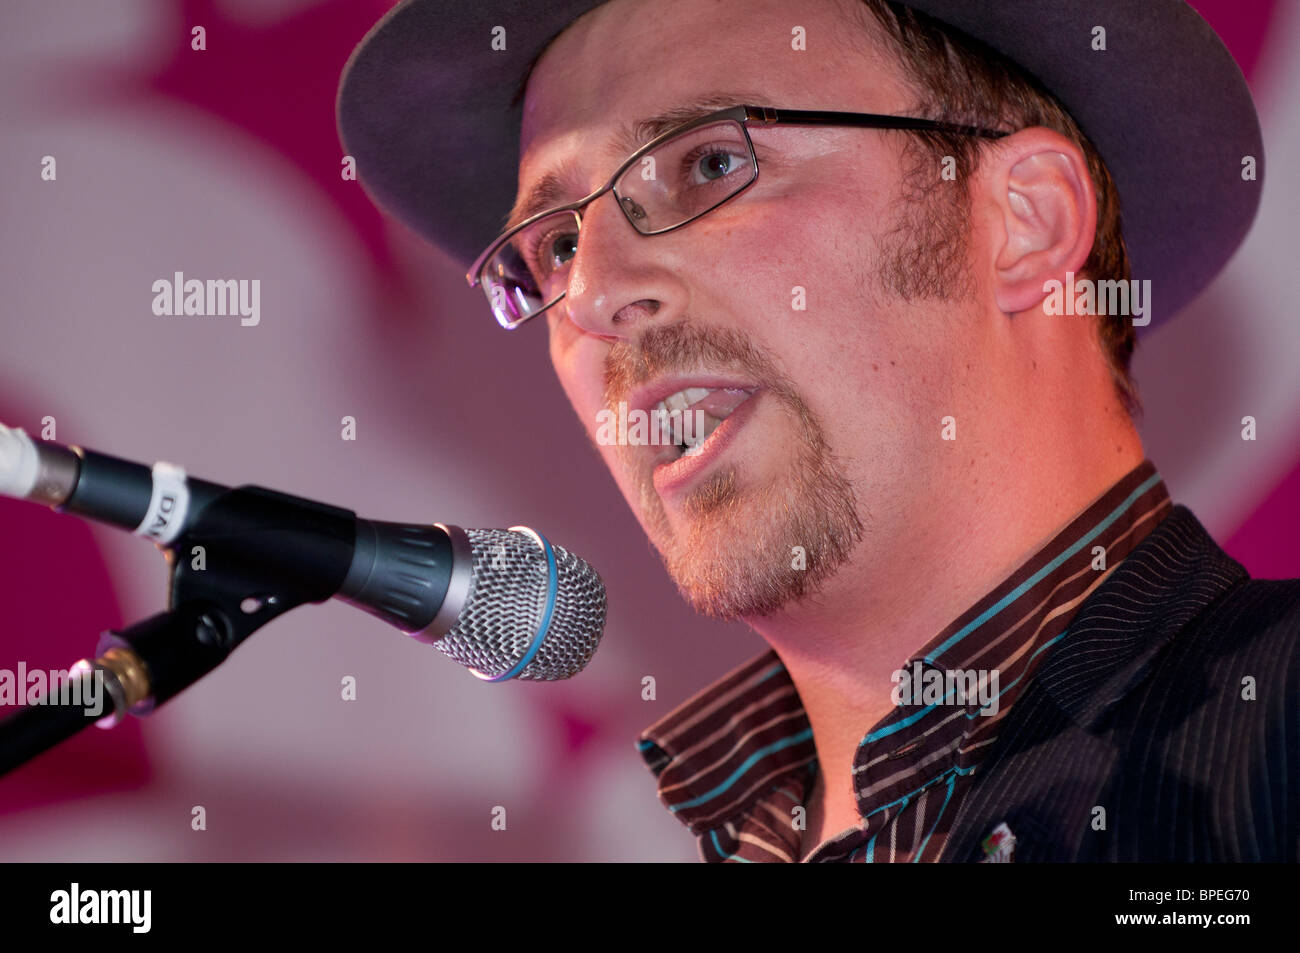 ANEURIN KARADOG welsh poet, performing at the National Eisteddfod of Wales, Ebbw Vale 2010 - Stock Image